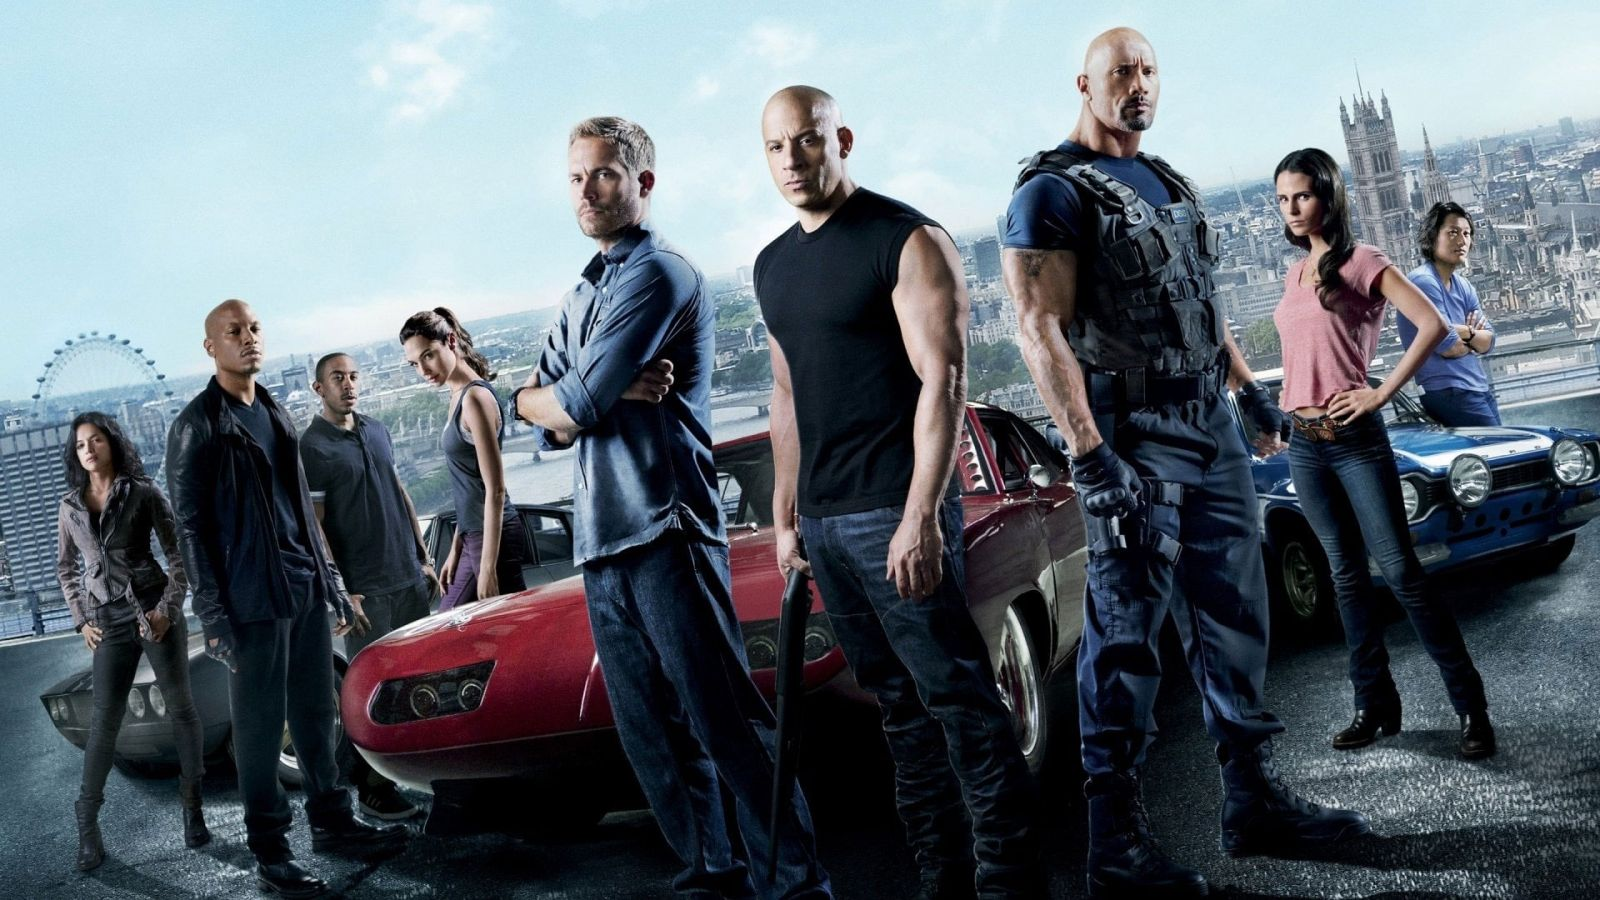 Fast and Furious 6 (2013) Full Movies English Version Watch Online Free